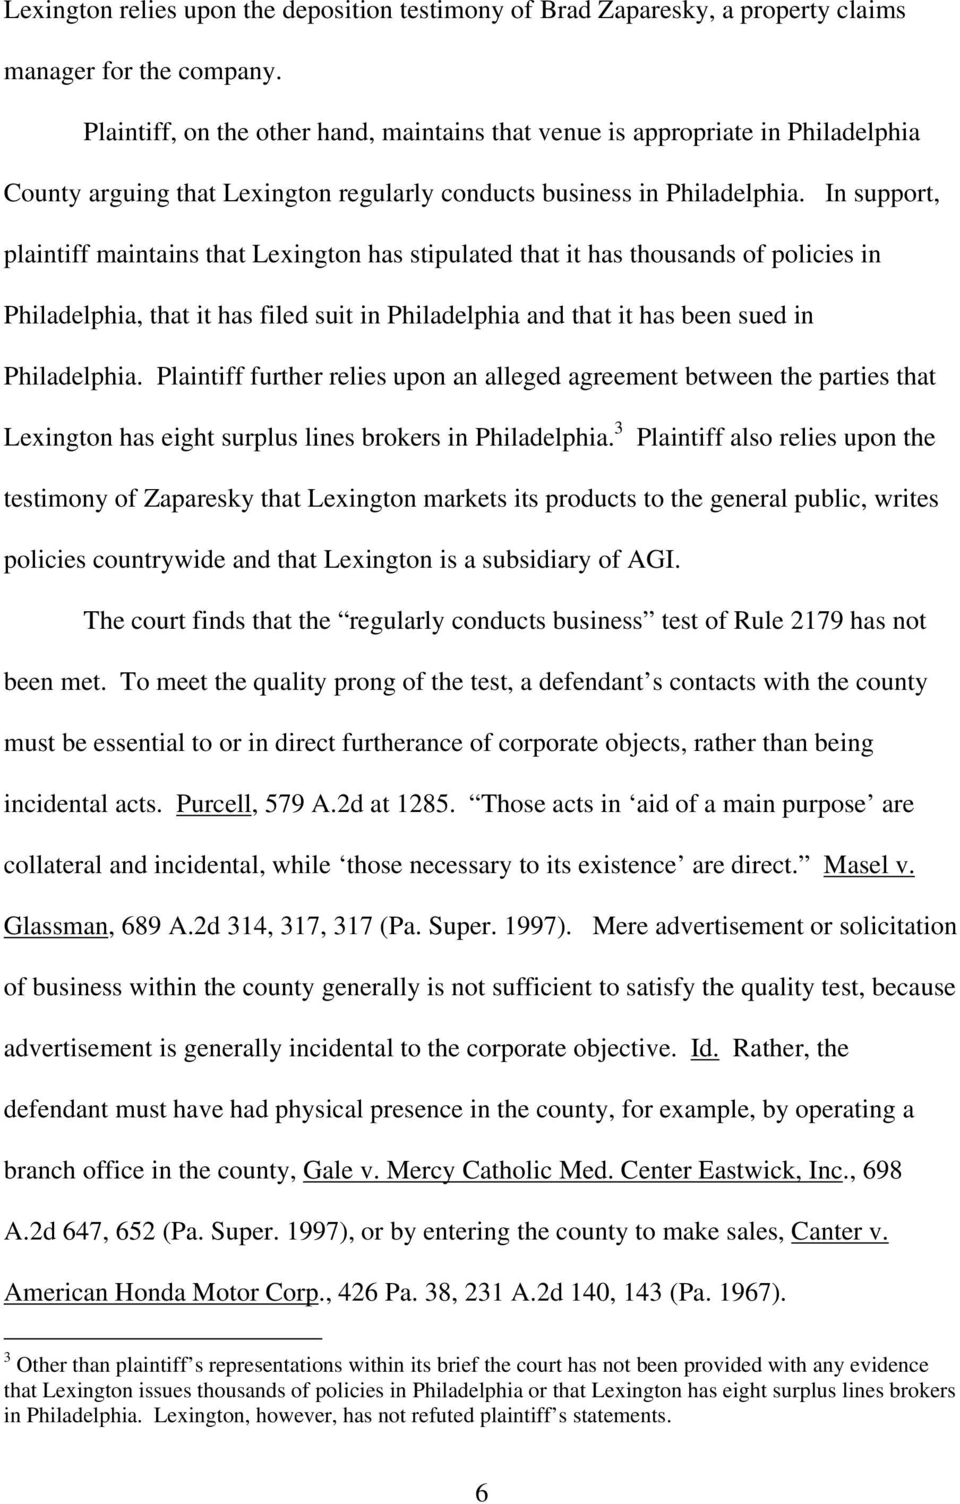 In support, plaintiff maintains that Lexington has stipulated that it has thousands of policies in Philadelphia, that it has filed suit in Philadelphia and that it has been sued in Philadelphia.